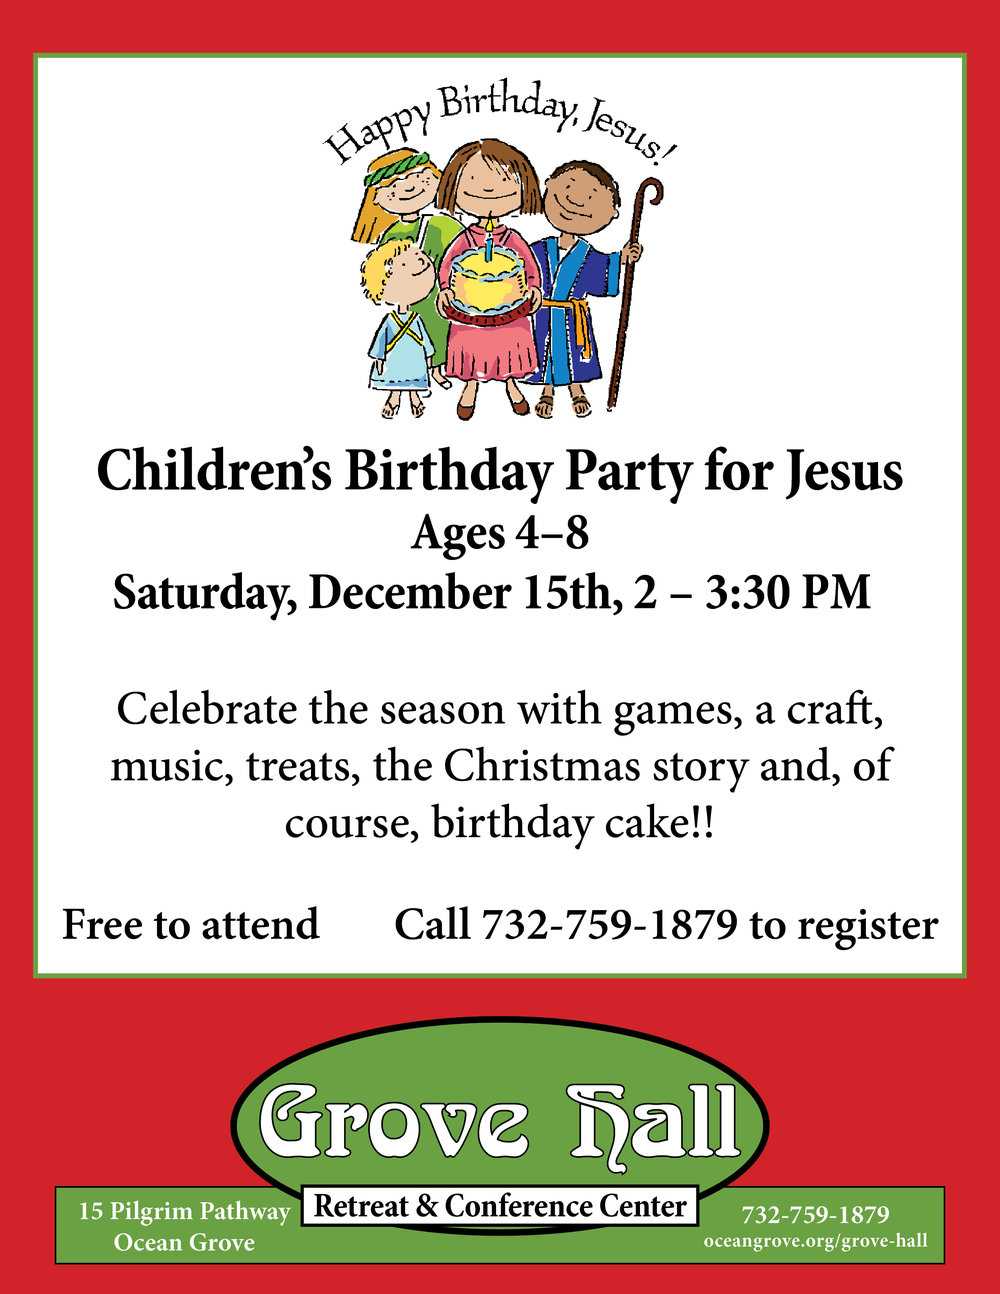 2018.12.15 - Children's Birthday Party for Jesus at Grove Hall - 10.12 15.59.jpg